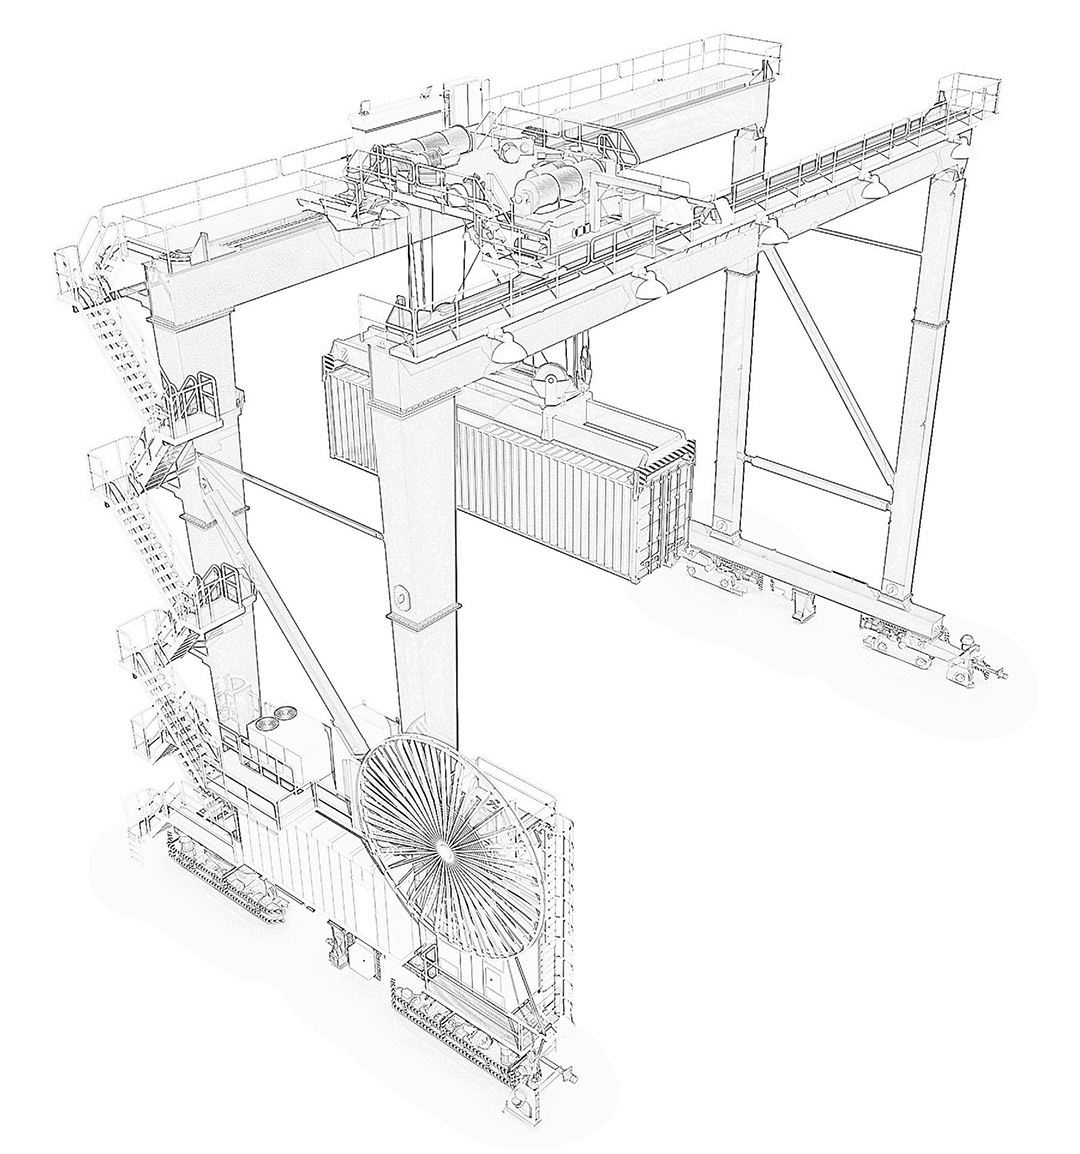 Overhead Crane Electrical Wiring Diagram The Best Wiring